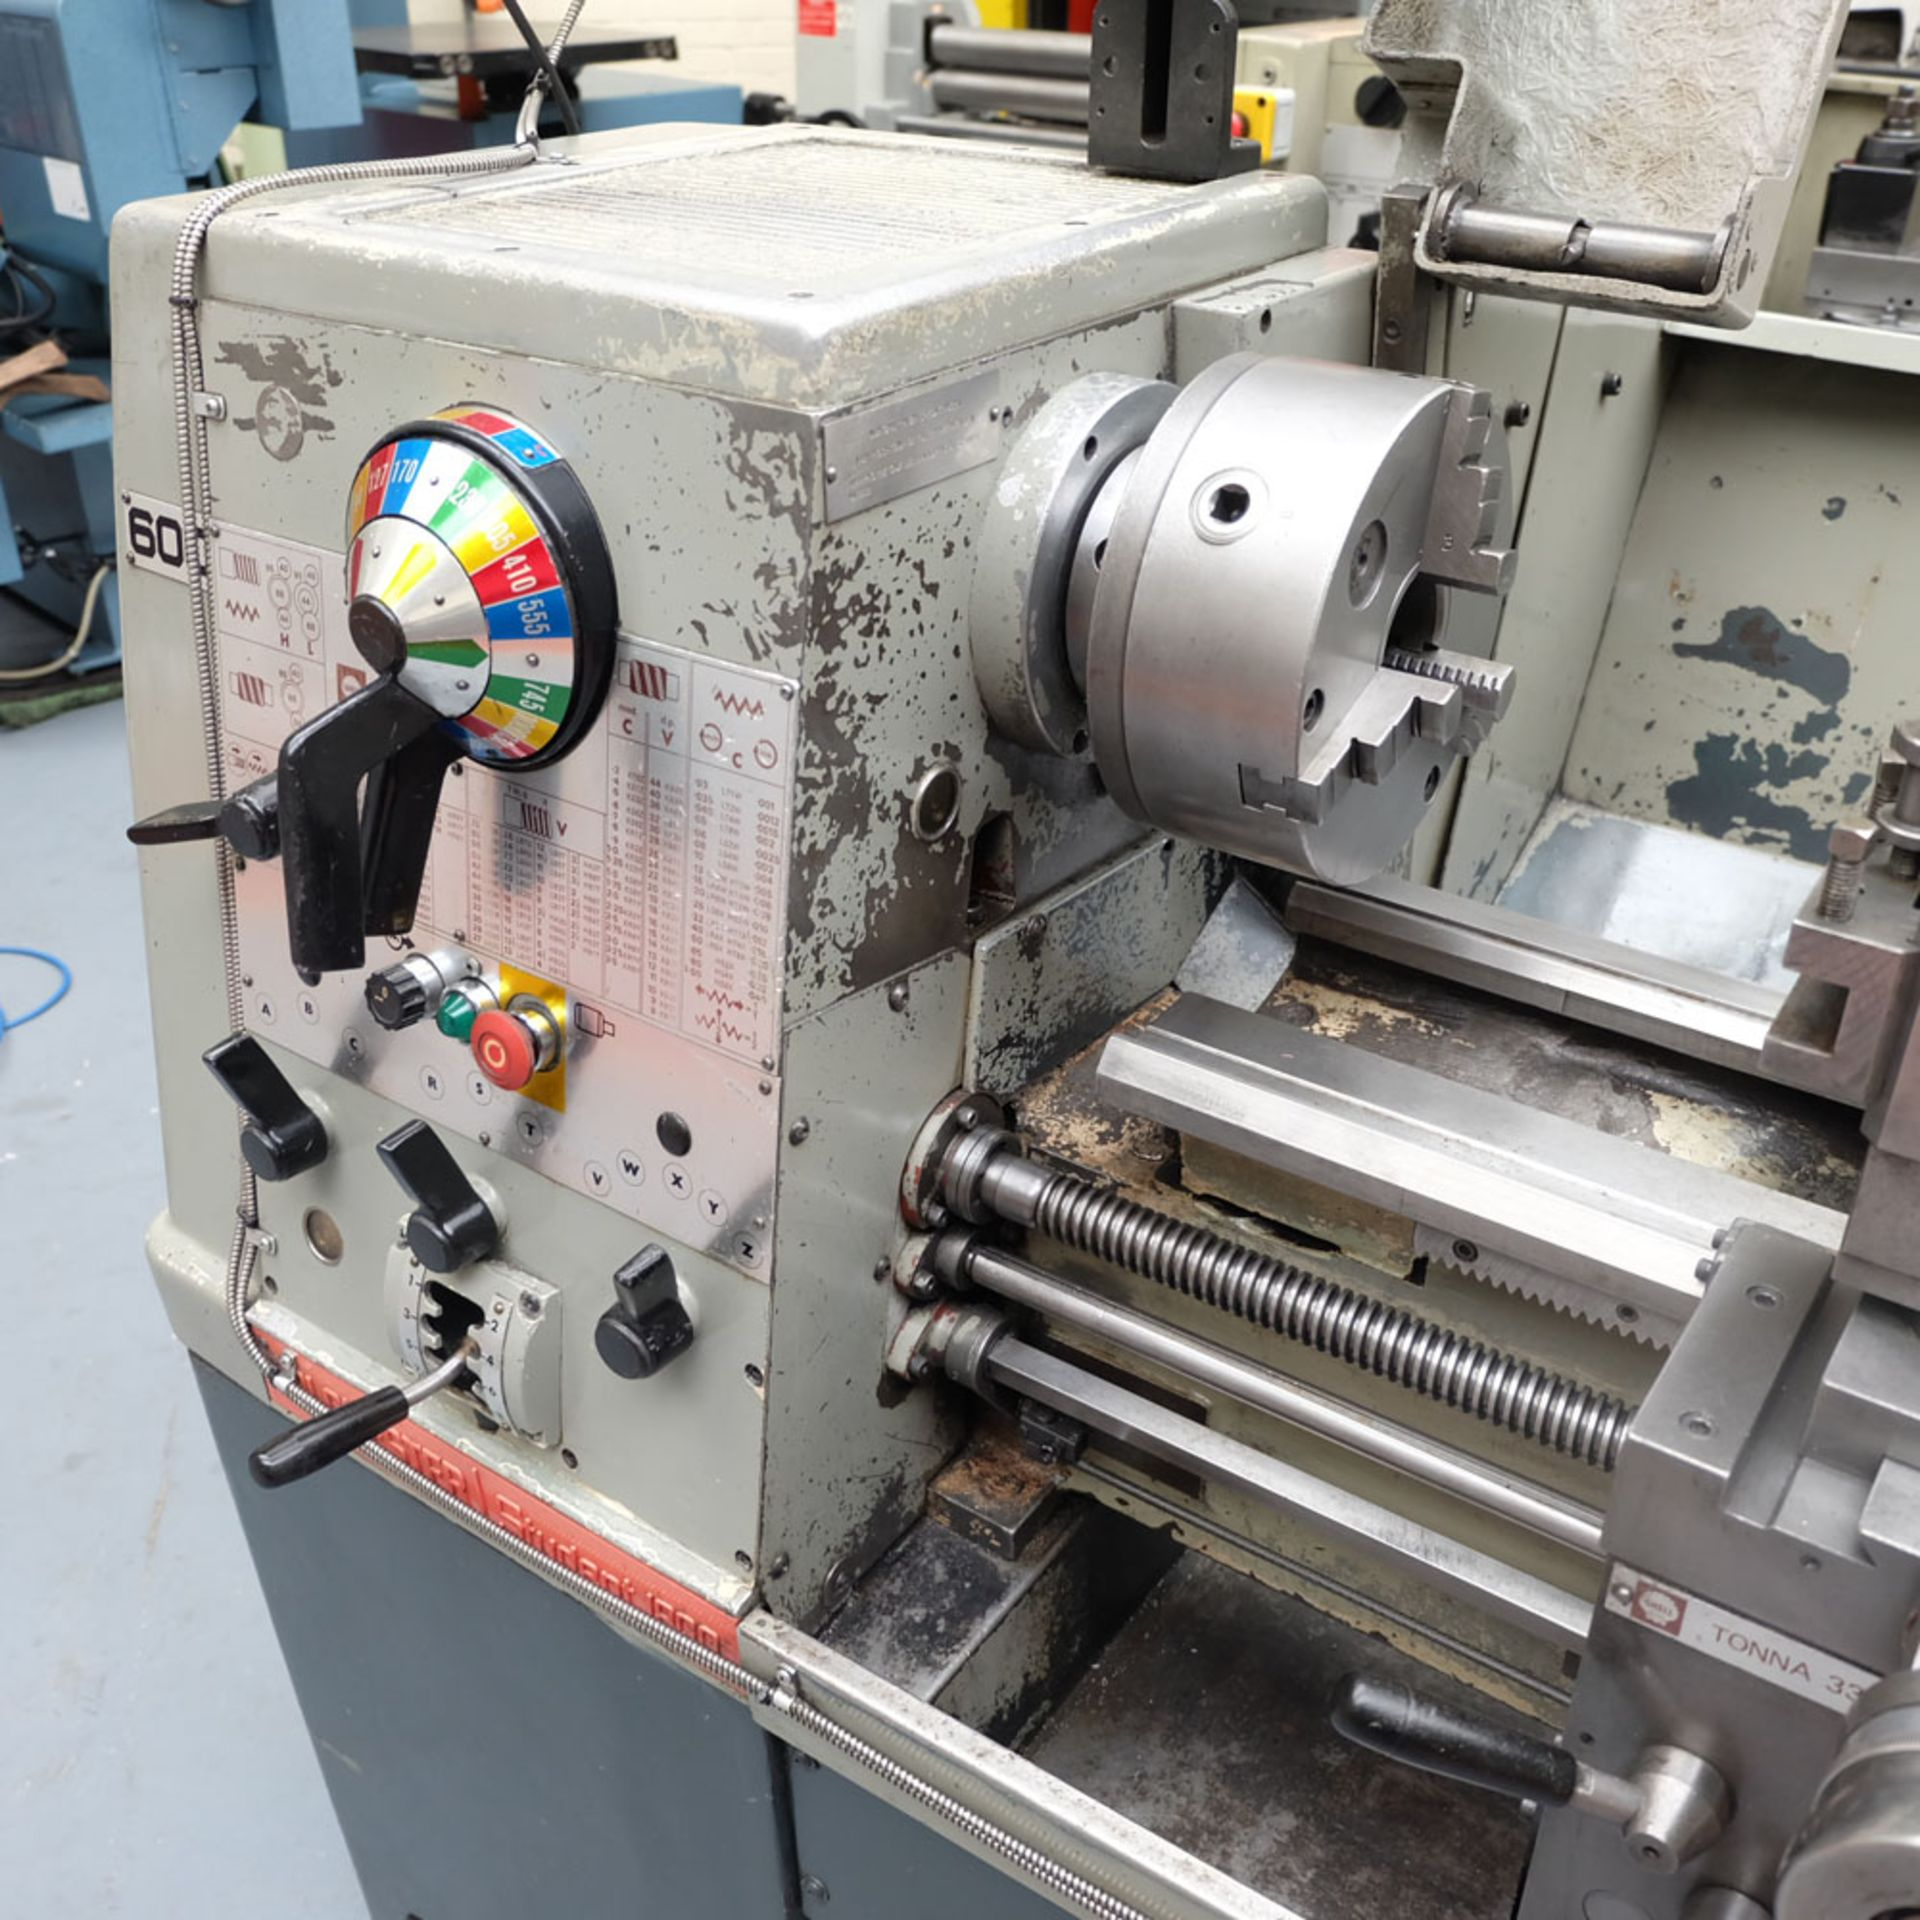 Colchester Student 1800 Gap Bed Centre Lathe. - Image 4 of 8